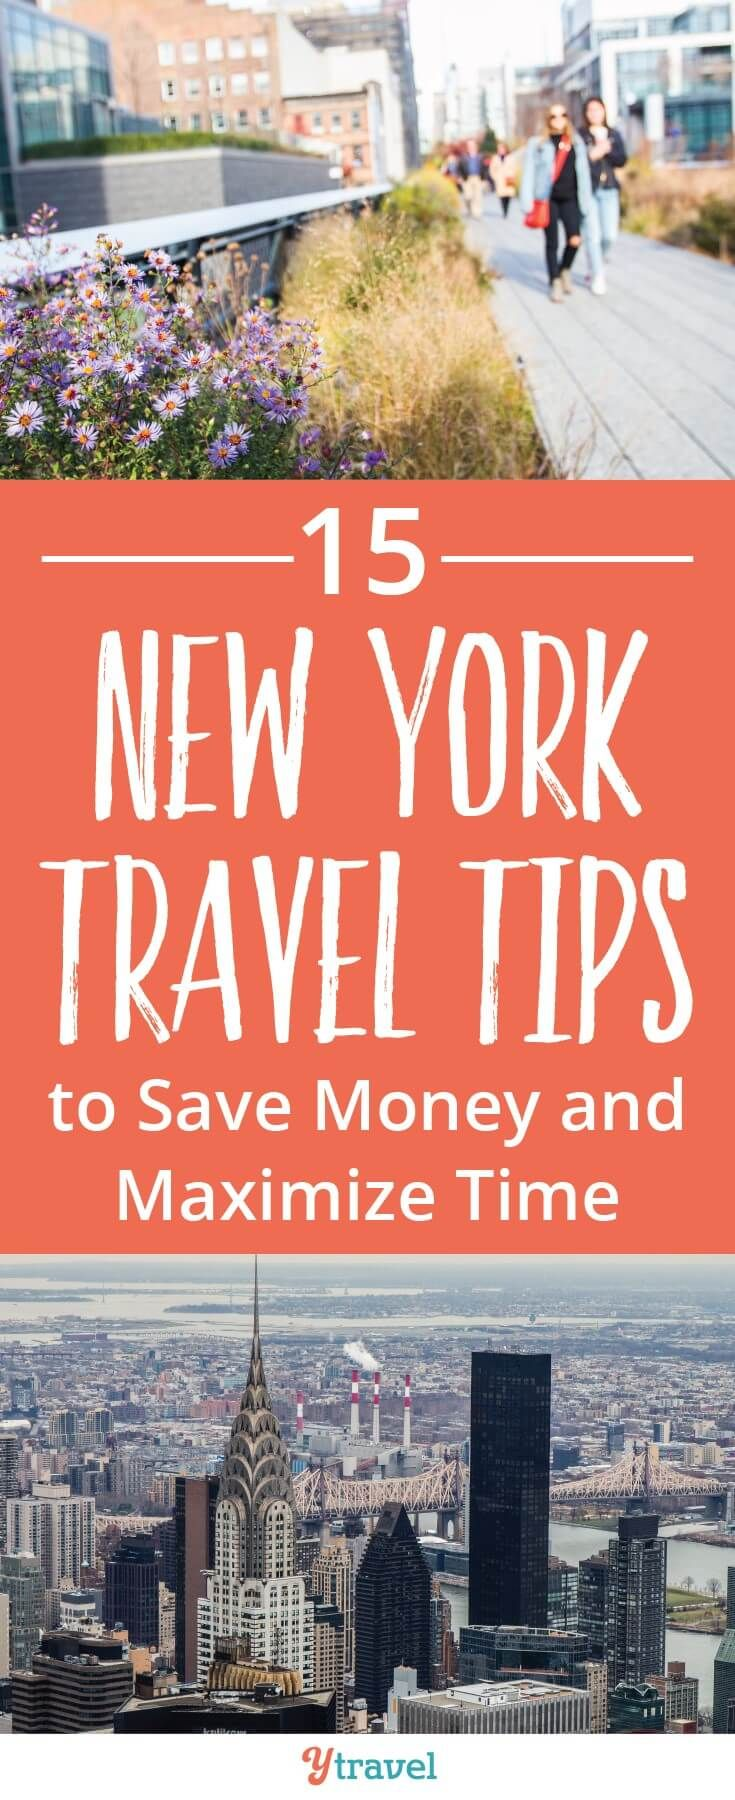 15 New York Travel Tips To Save Money And Maximize Time Epic Guide